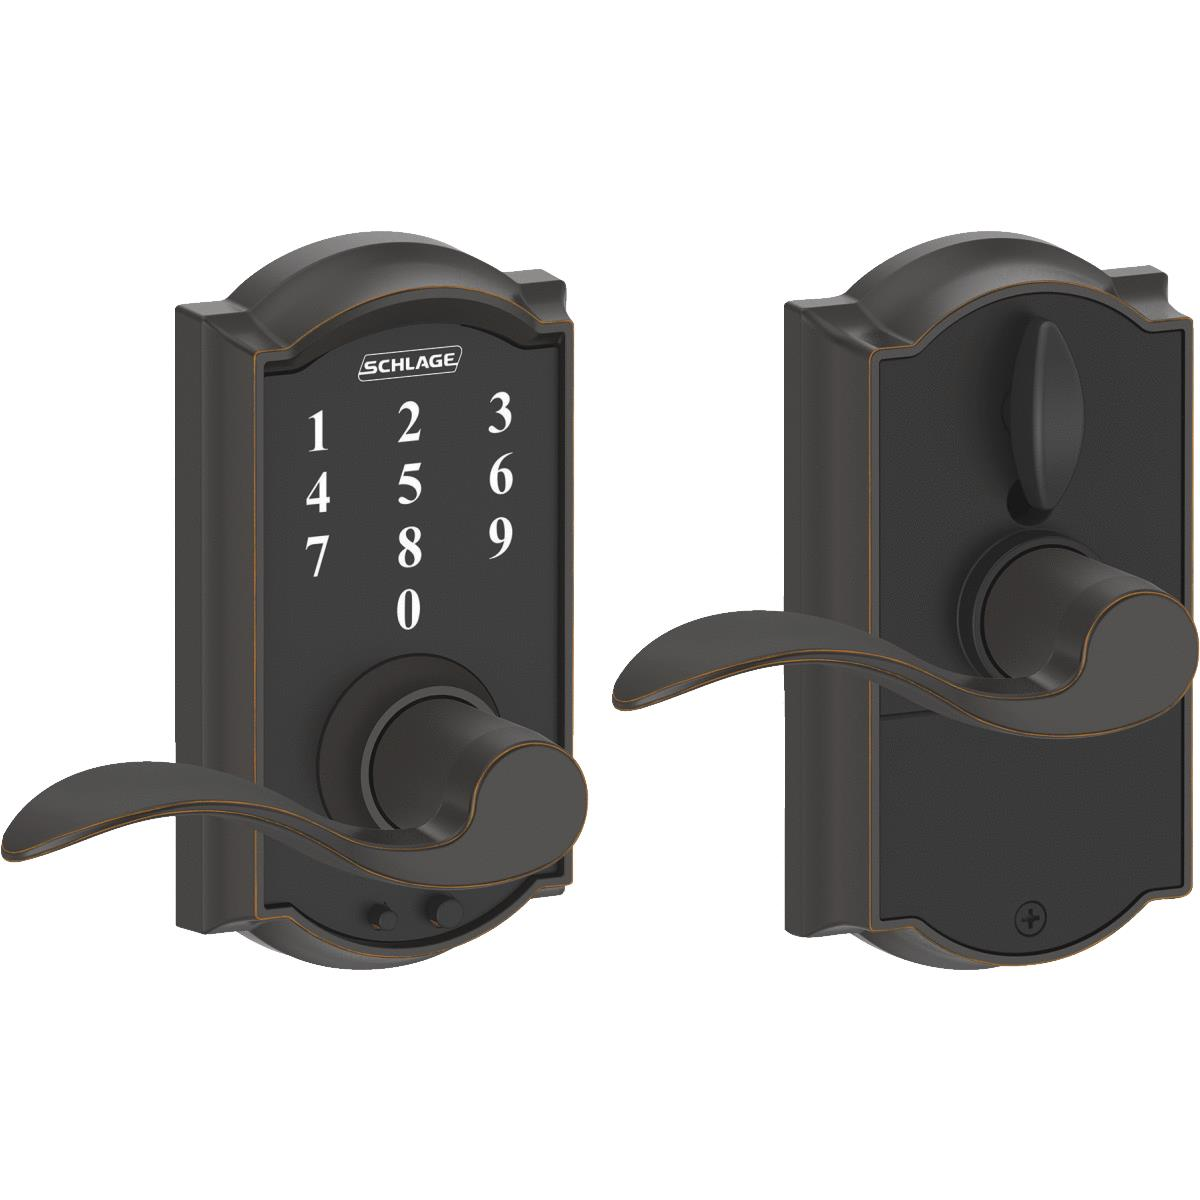 Schlage Camelot Lever Touch Electronic Entry Lock